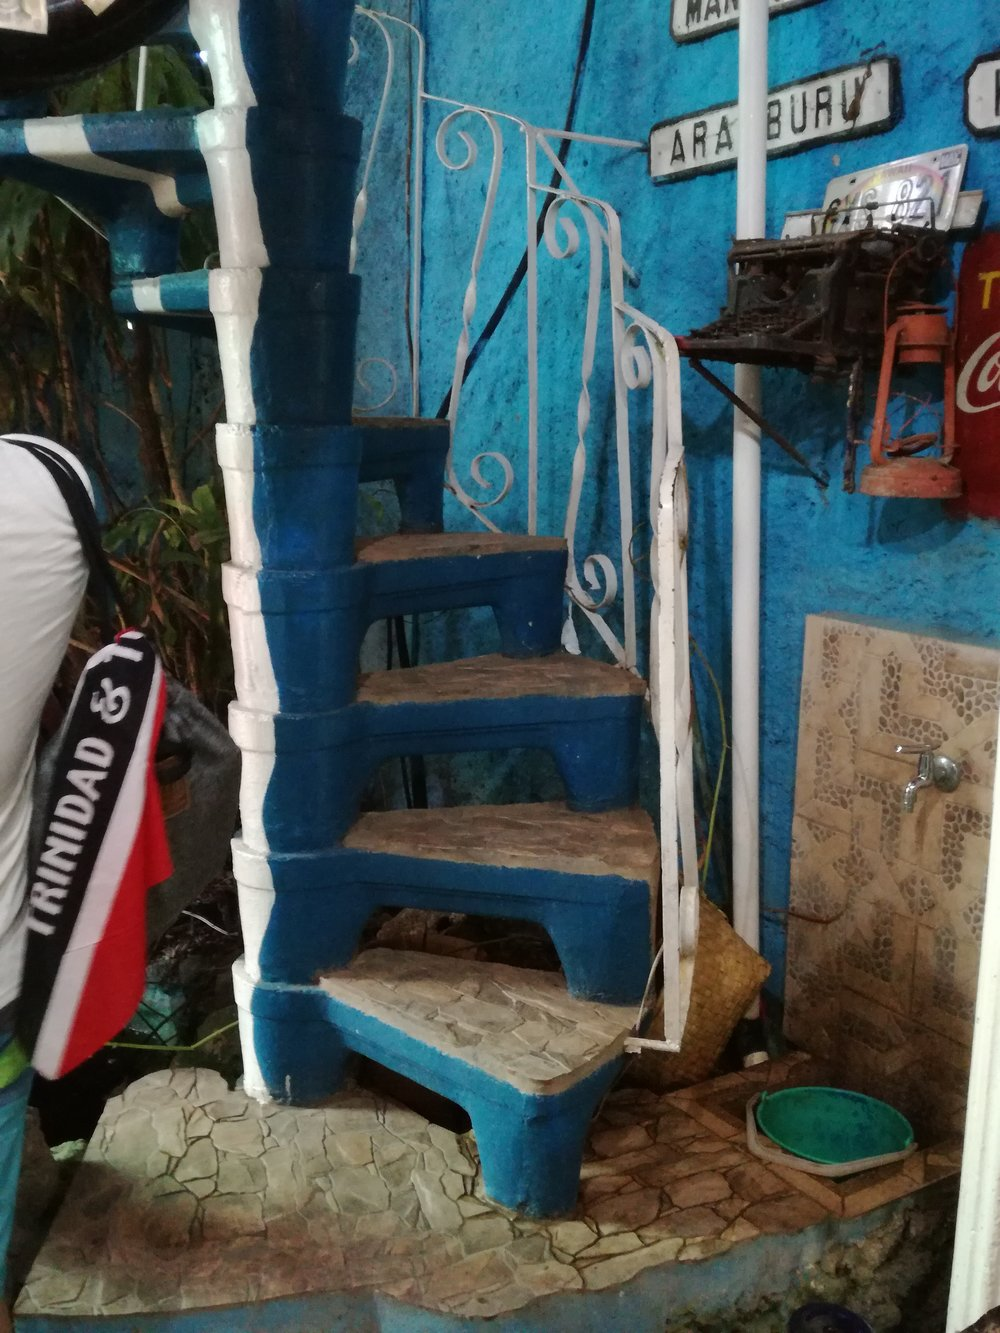 Stairs that probably led to the actual residence of Salvador. And we always rep our 868!